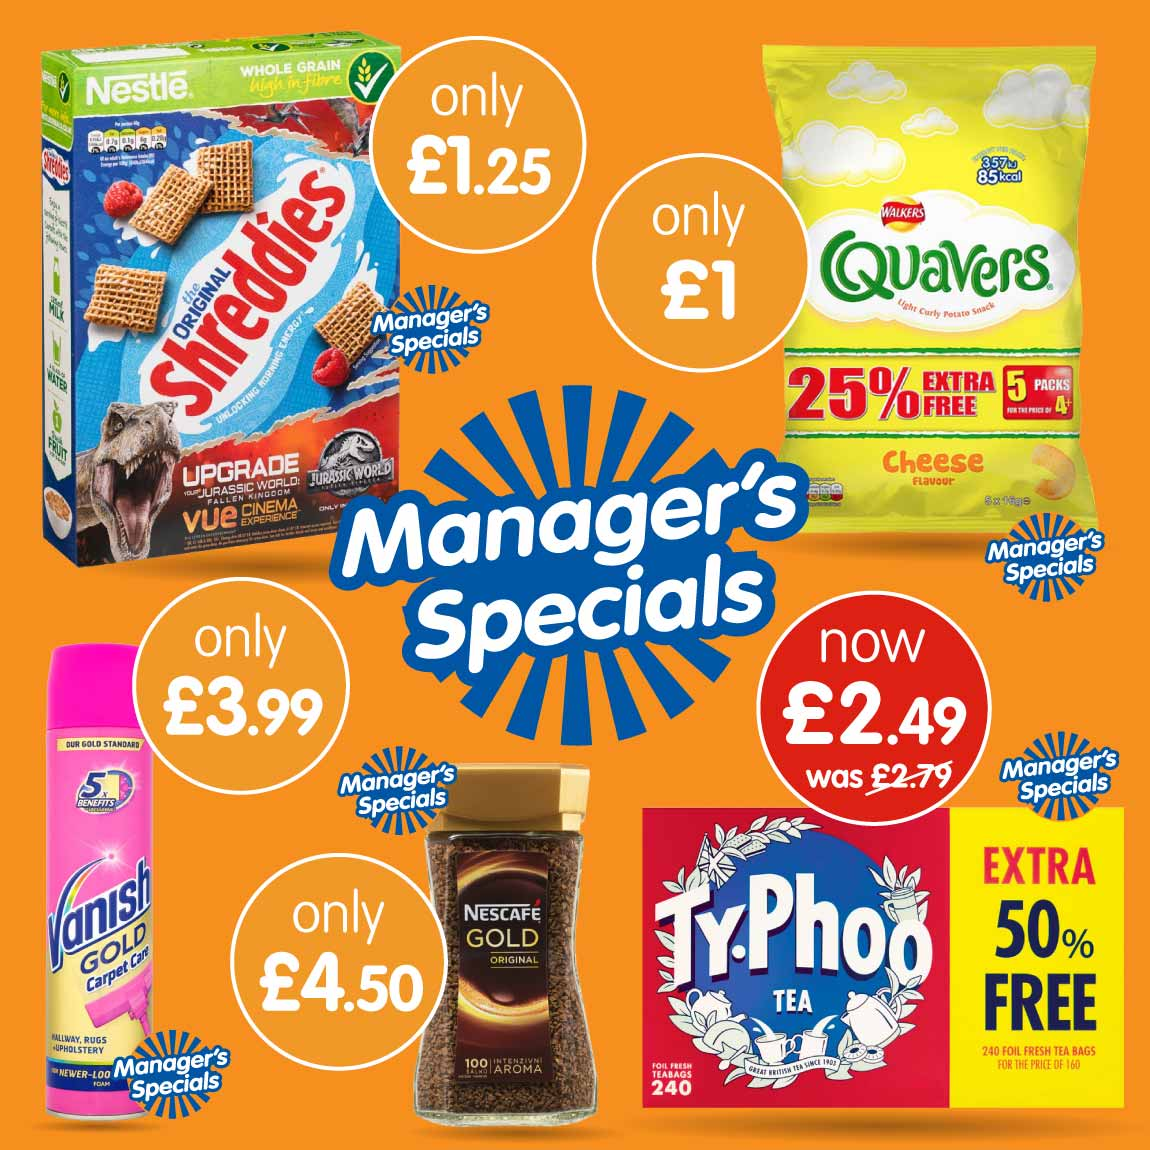 New Manager's Specials now in store at B&M.